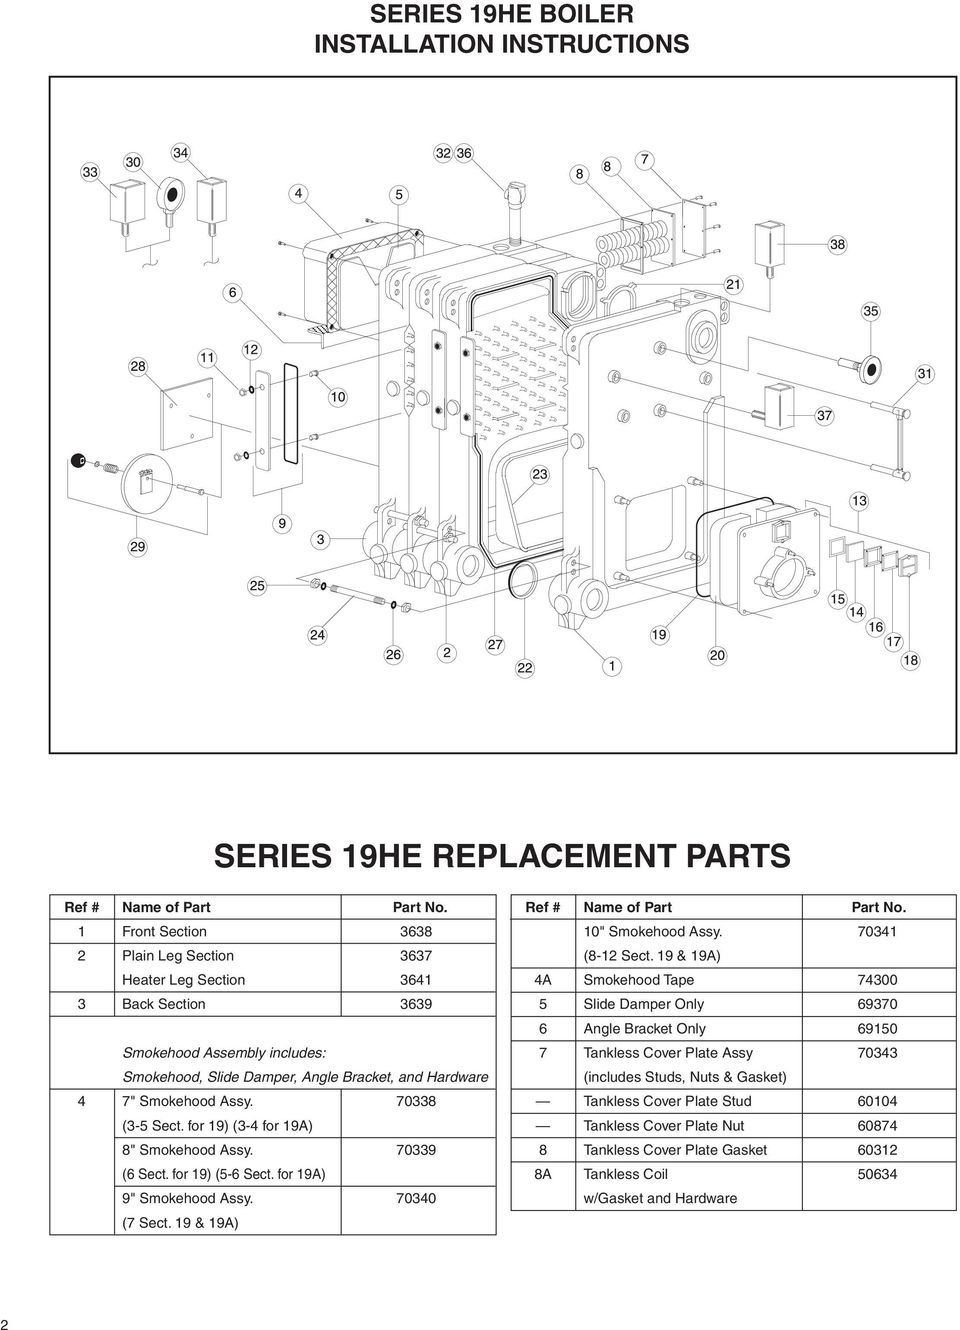 SERIES 19HE BOILER INSTALLATION INSTRUCTIONS - PDF